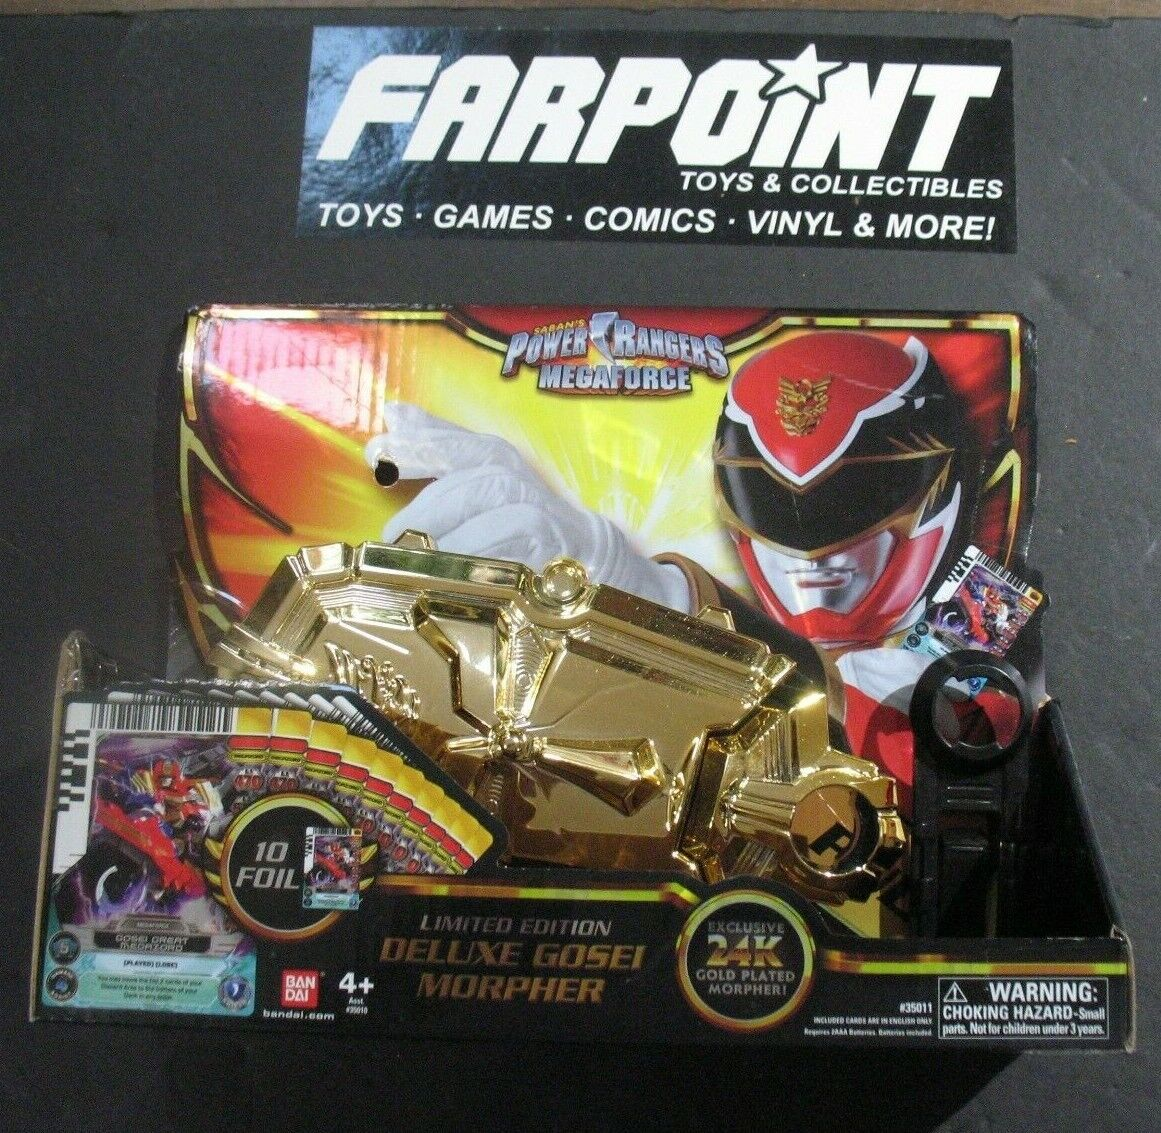 Mighty Morphin Power Rangers Mega Force MMPR Deluxe Gosei Morpher gold SDCC 2013